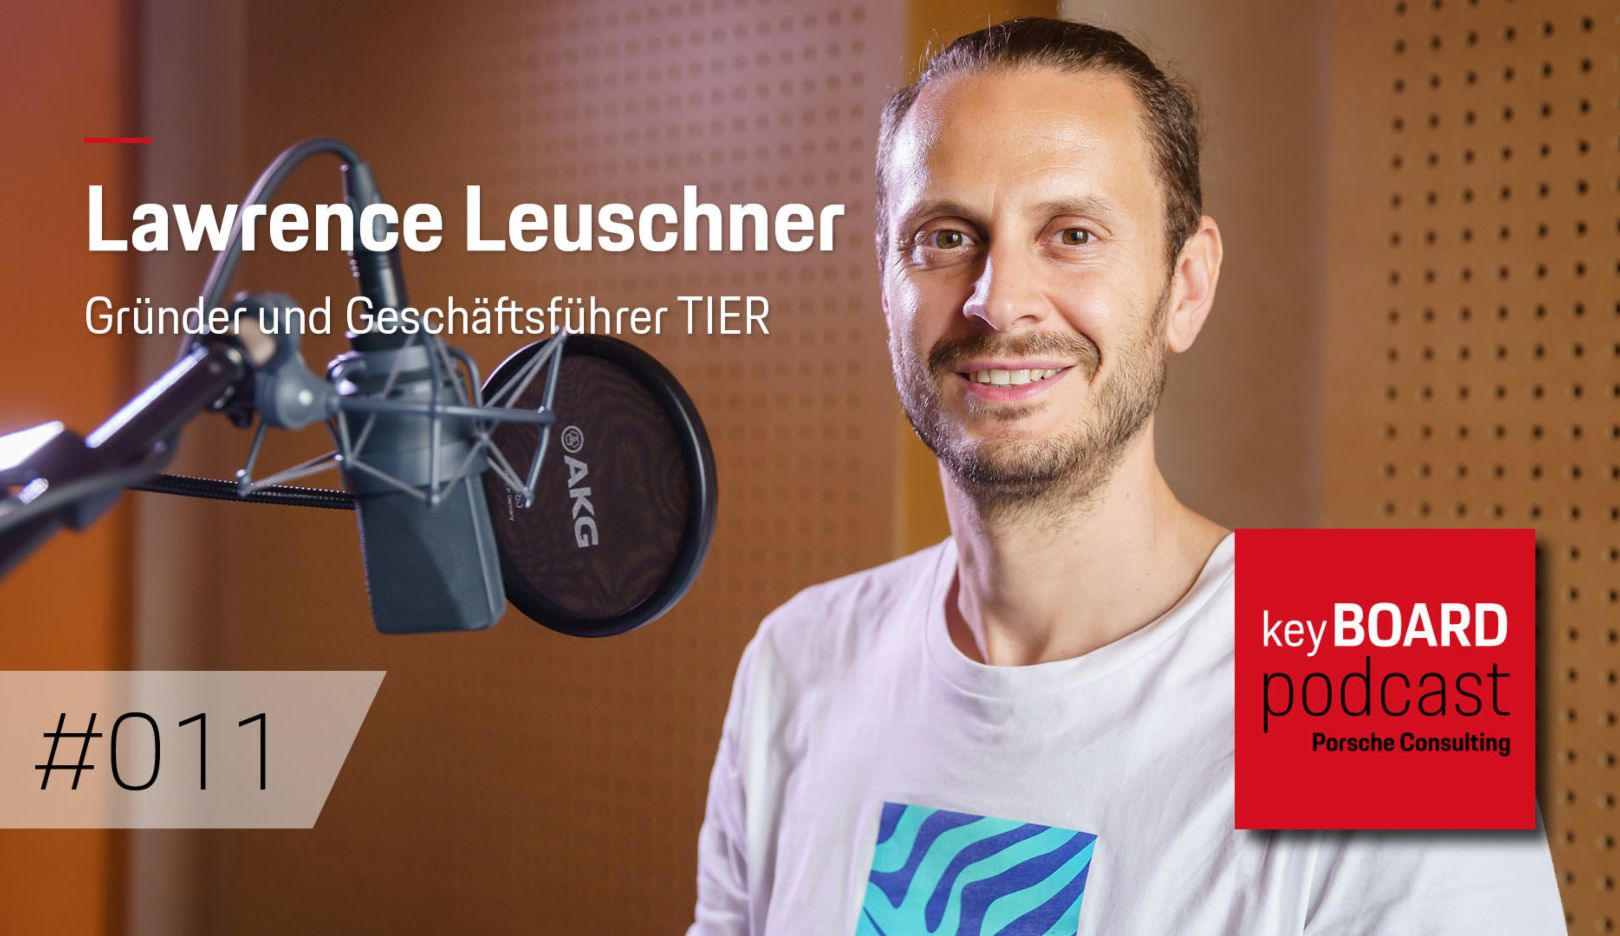 Porsche Consulting Podcast #011: Lawrence Leuschner